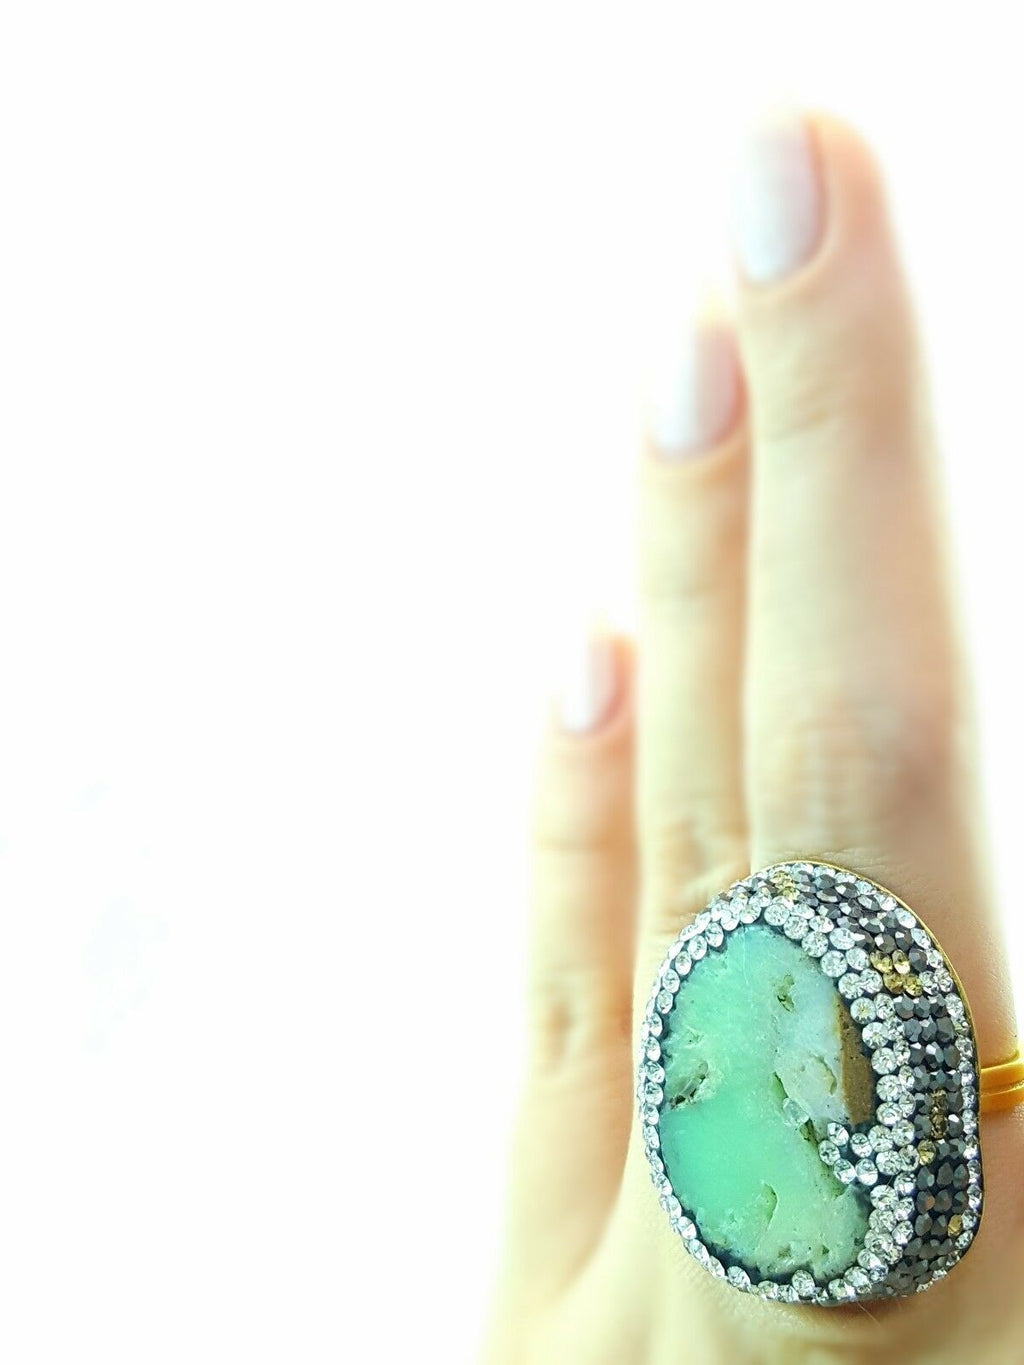 Amazonite Natural Stone Druzy Ring Turkish Wholesale Handmade 925 Sterling Silver Jewelry R1472 - Turkishsilverjewelry